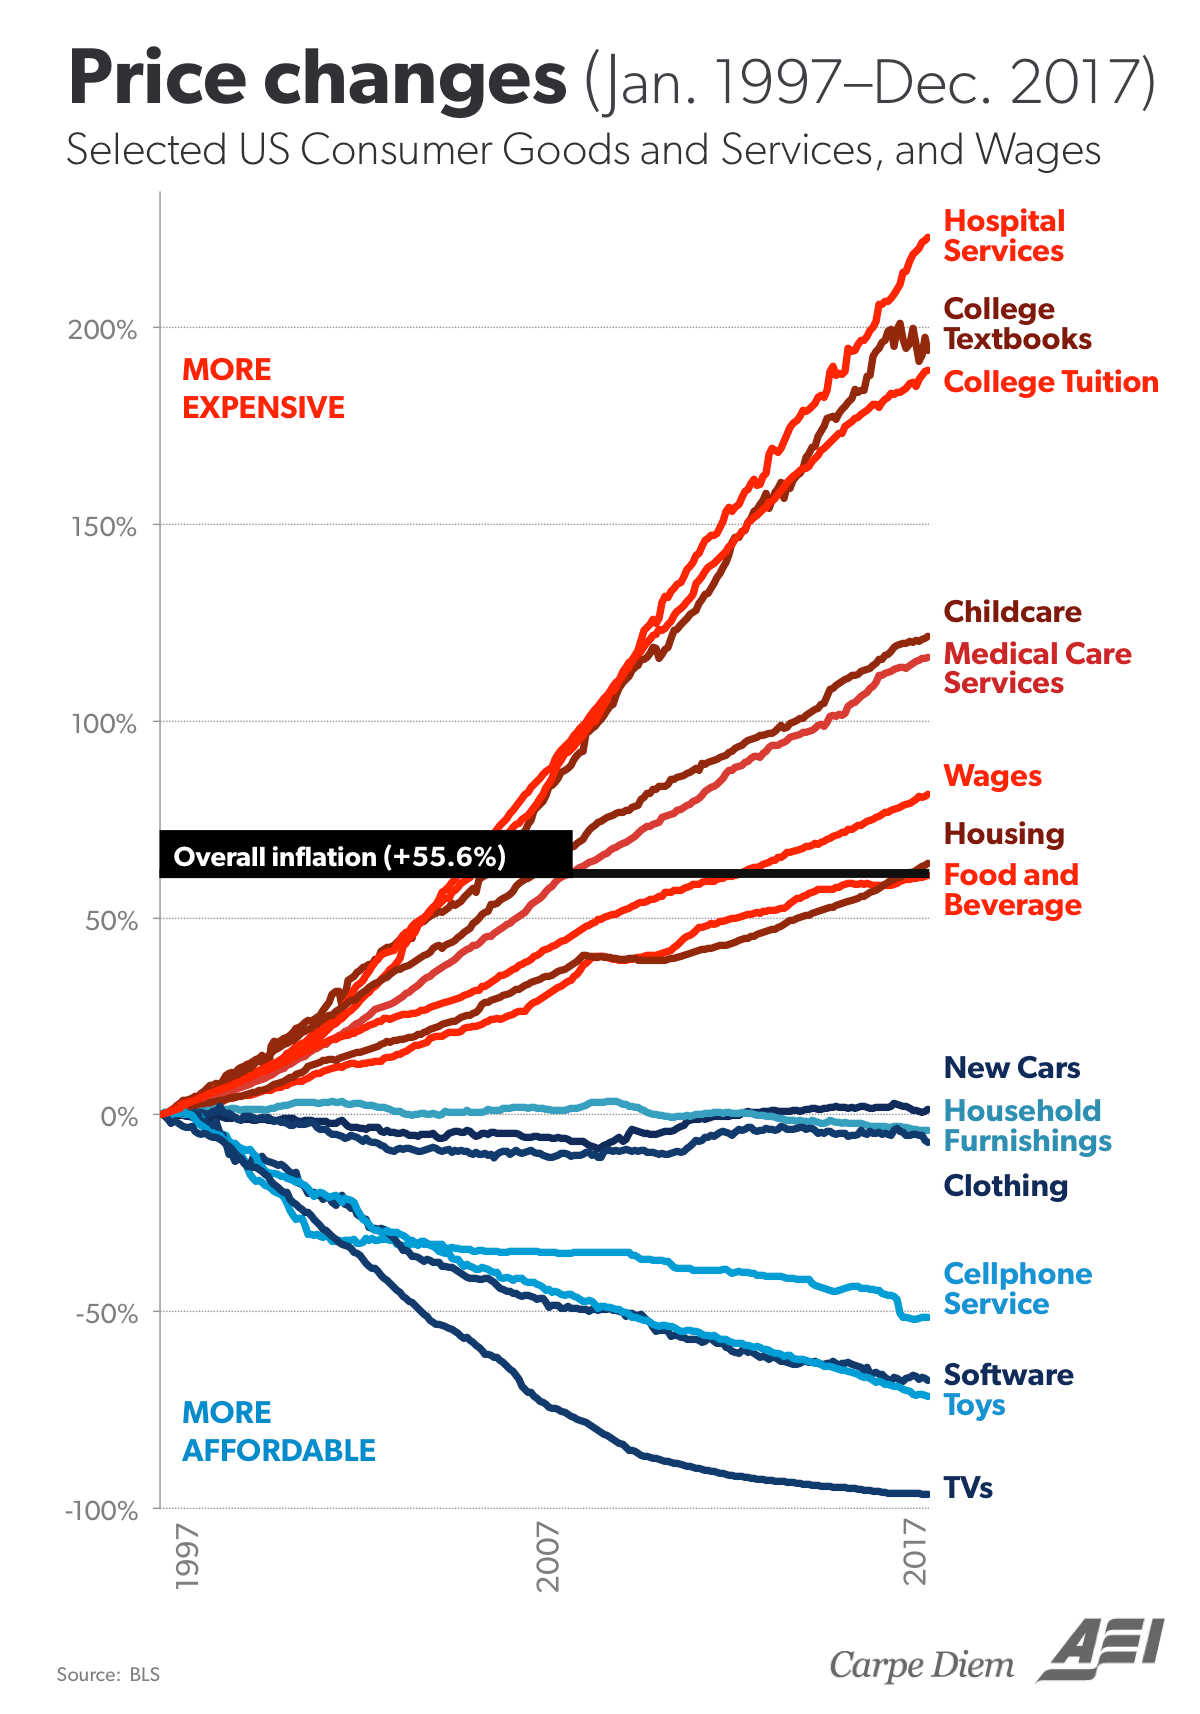 medium resolution of as ritholtz points out the two big outliers to the upside are health care and college on the flip side clothes cars tvs and technology in general